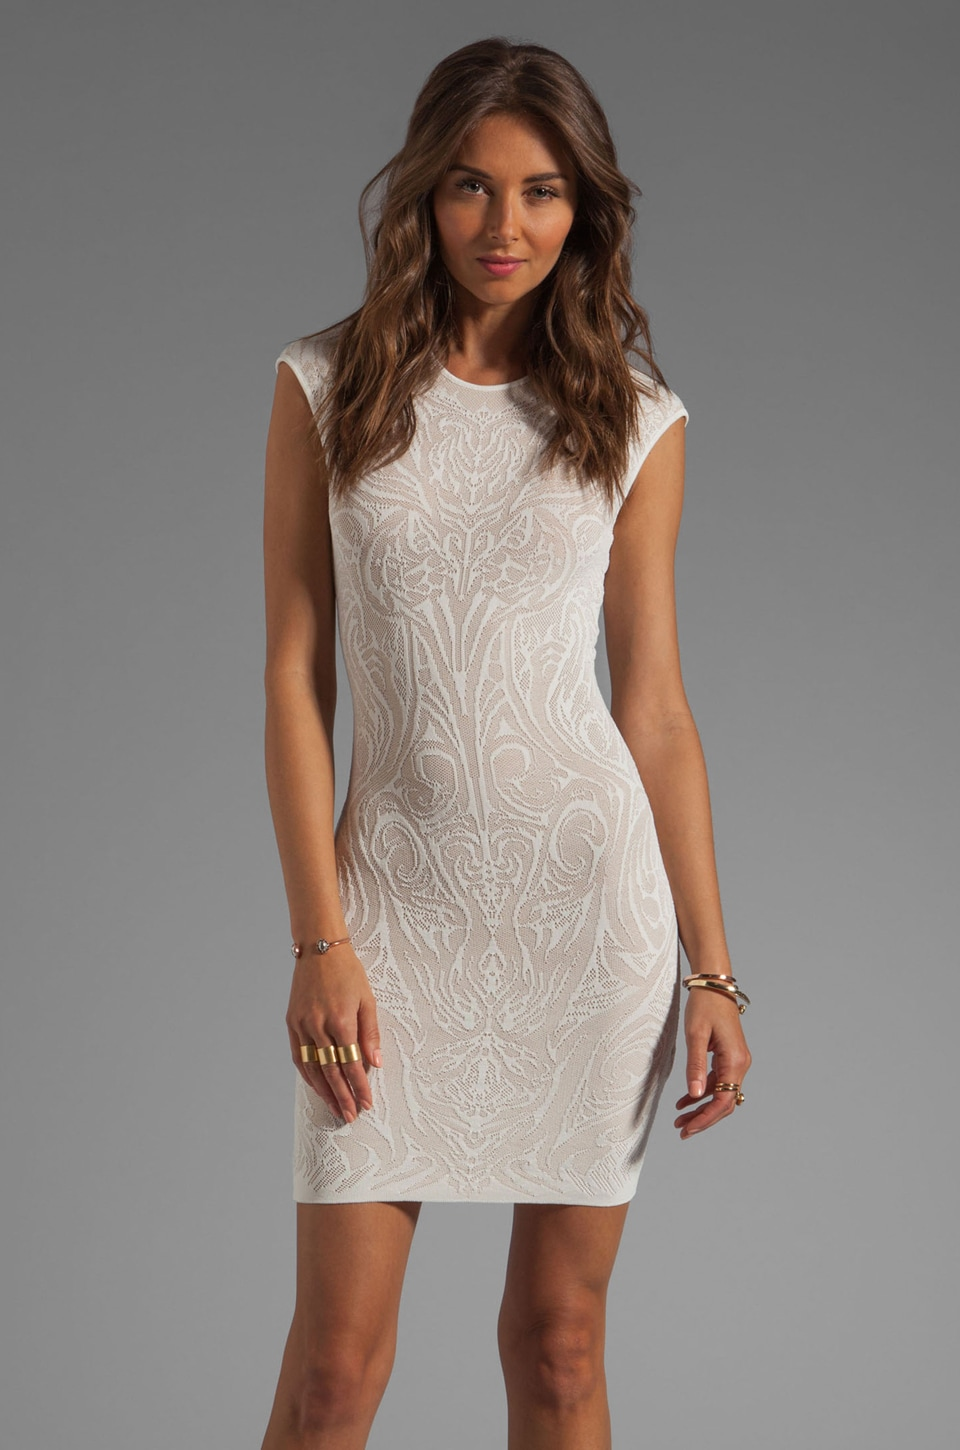 RVN Mini Tattoo Lace Jacquard Dress in White/Nude